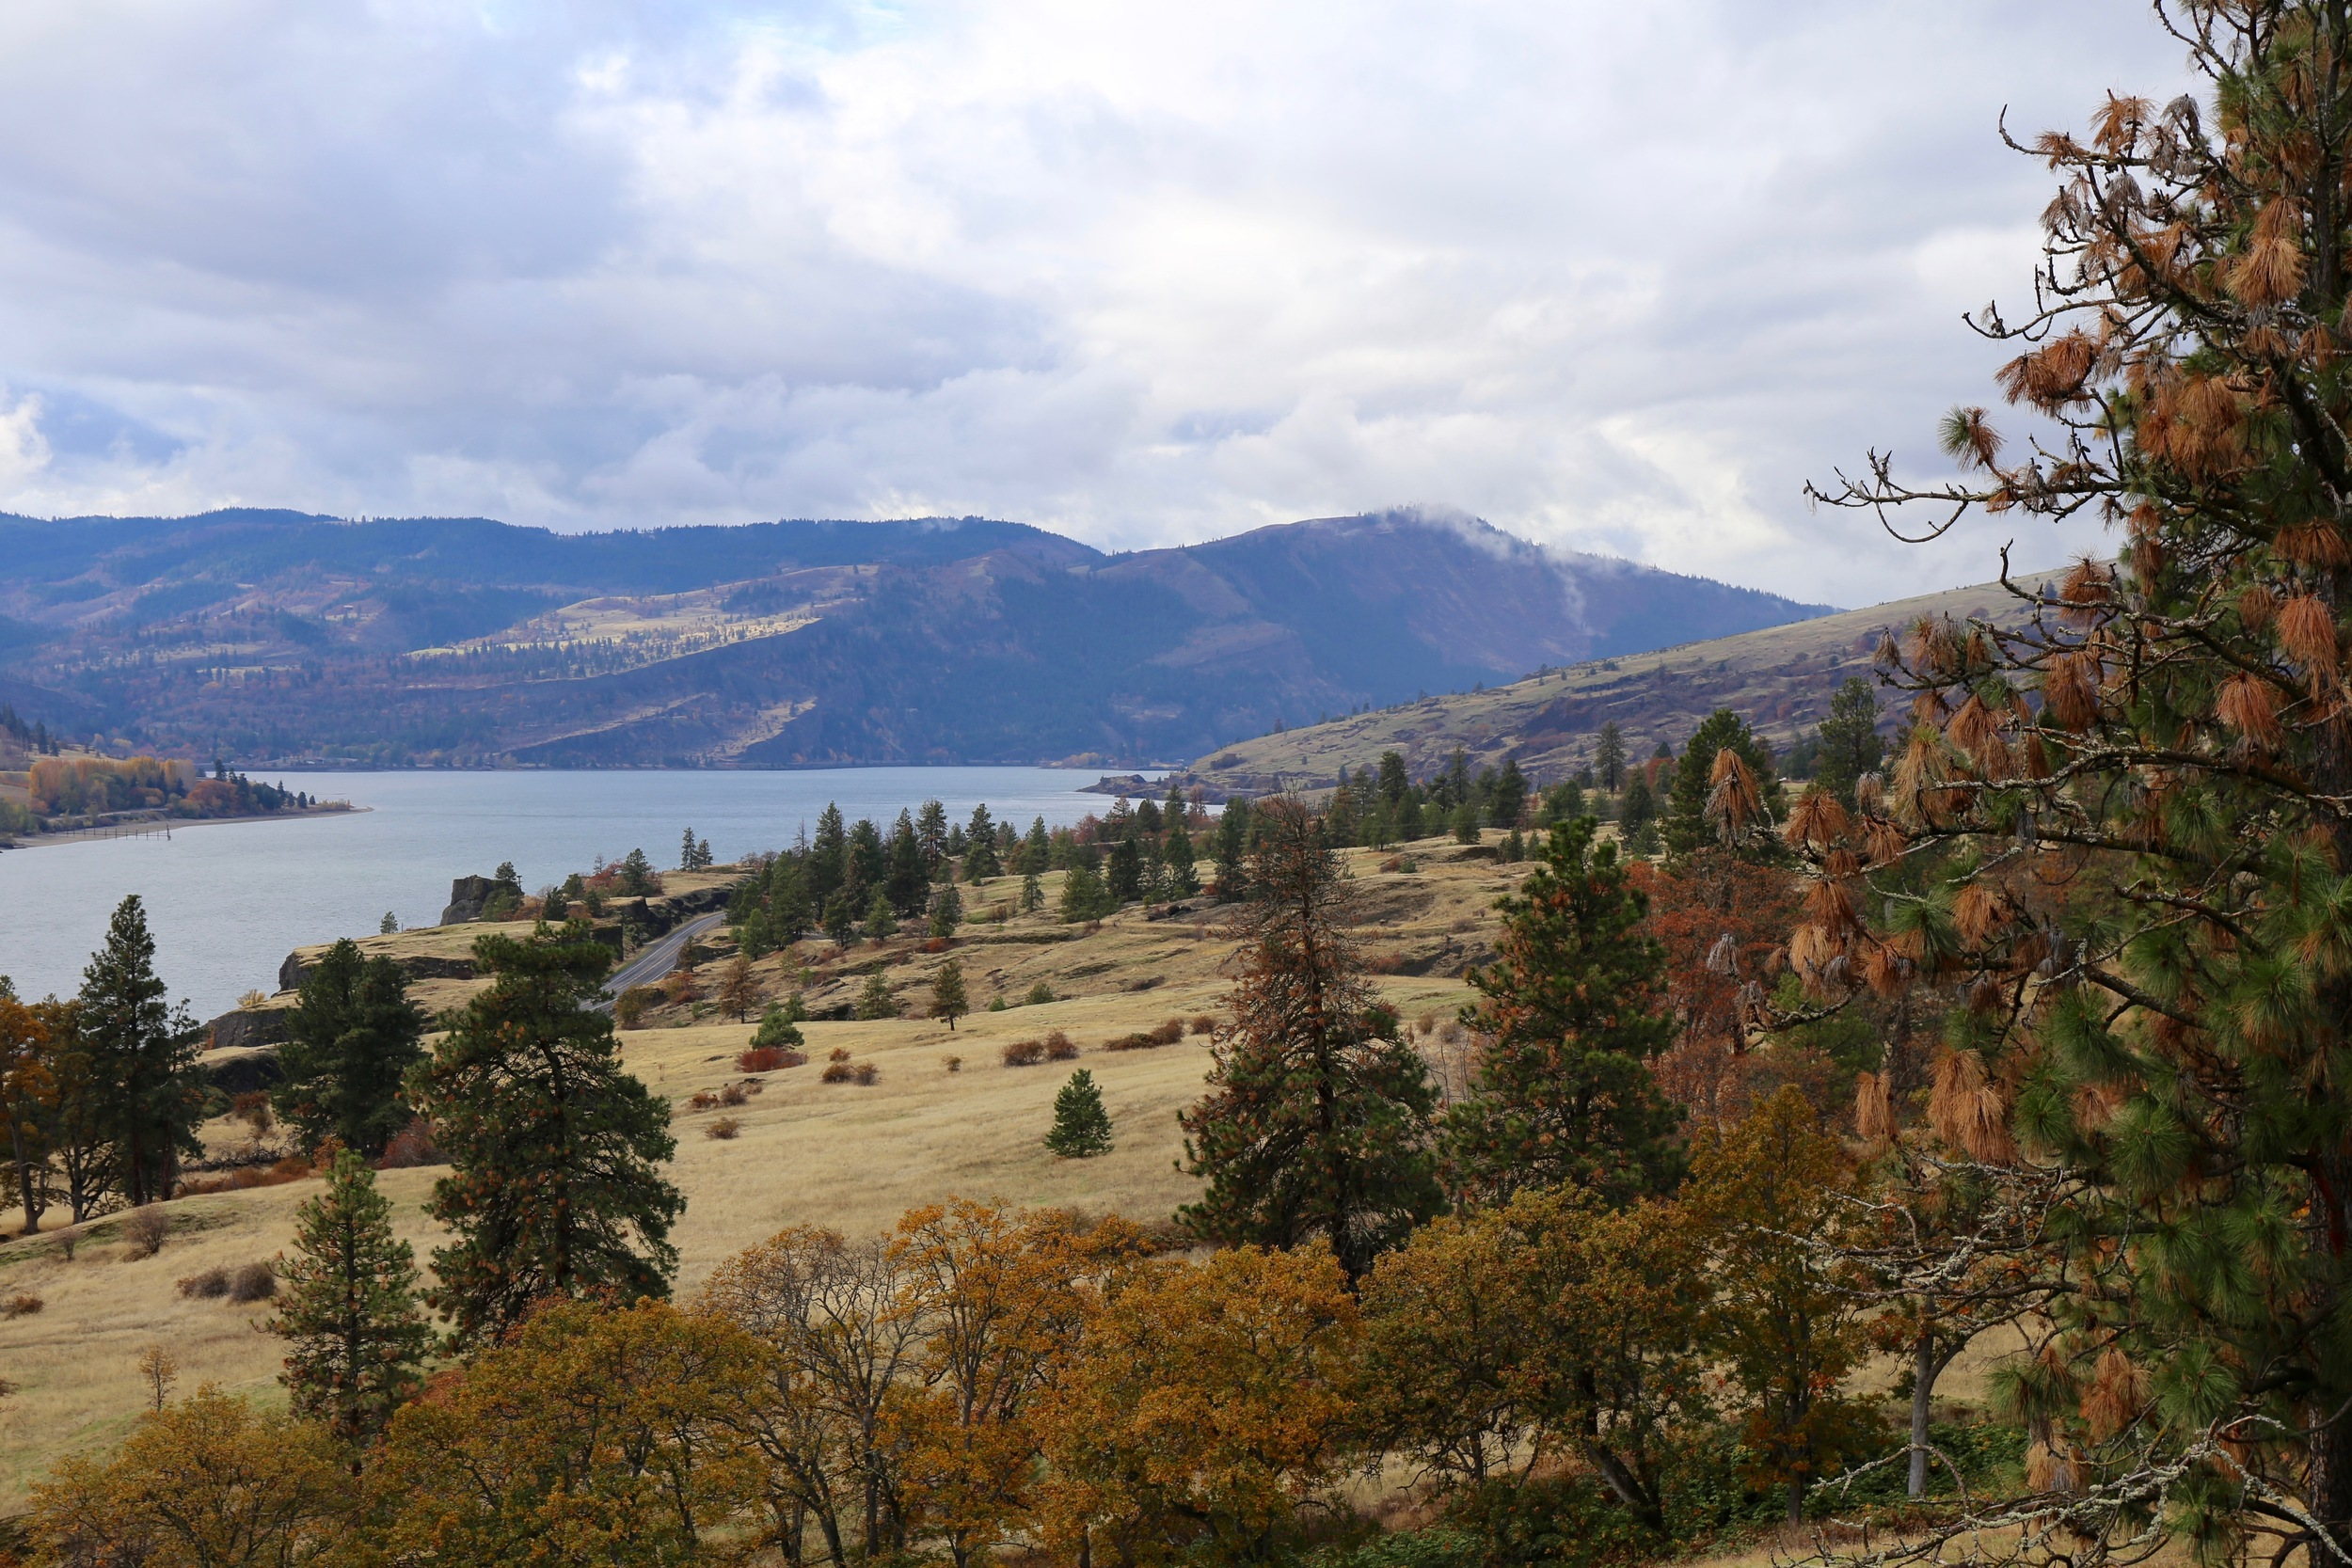 A view from Highway 8 in the Columbia Gorge AVA